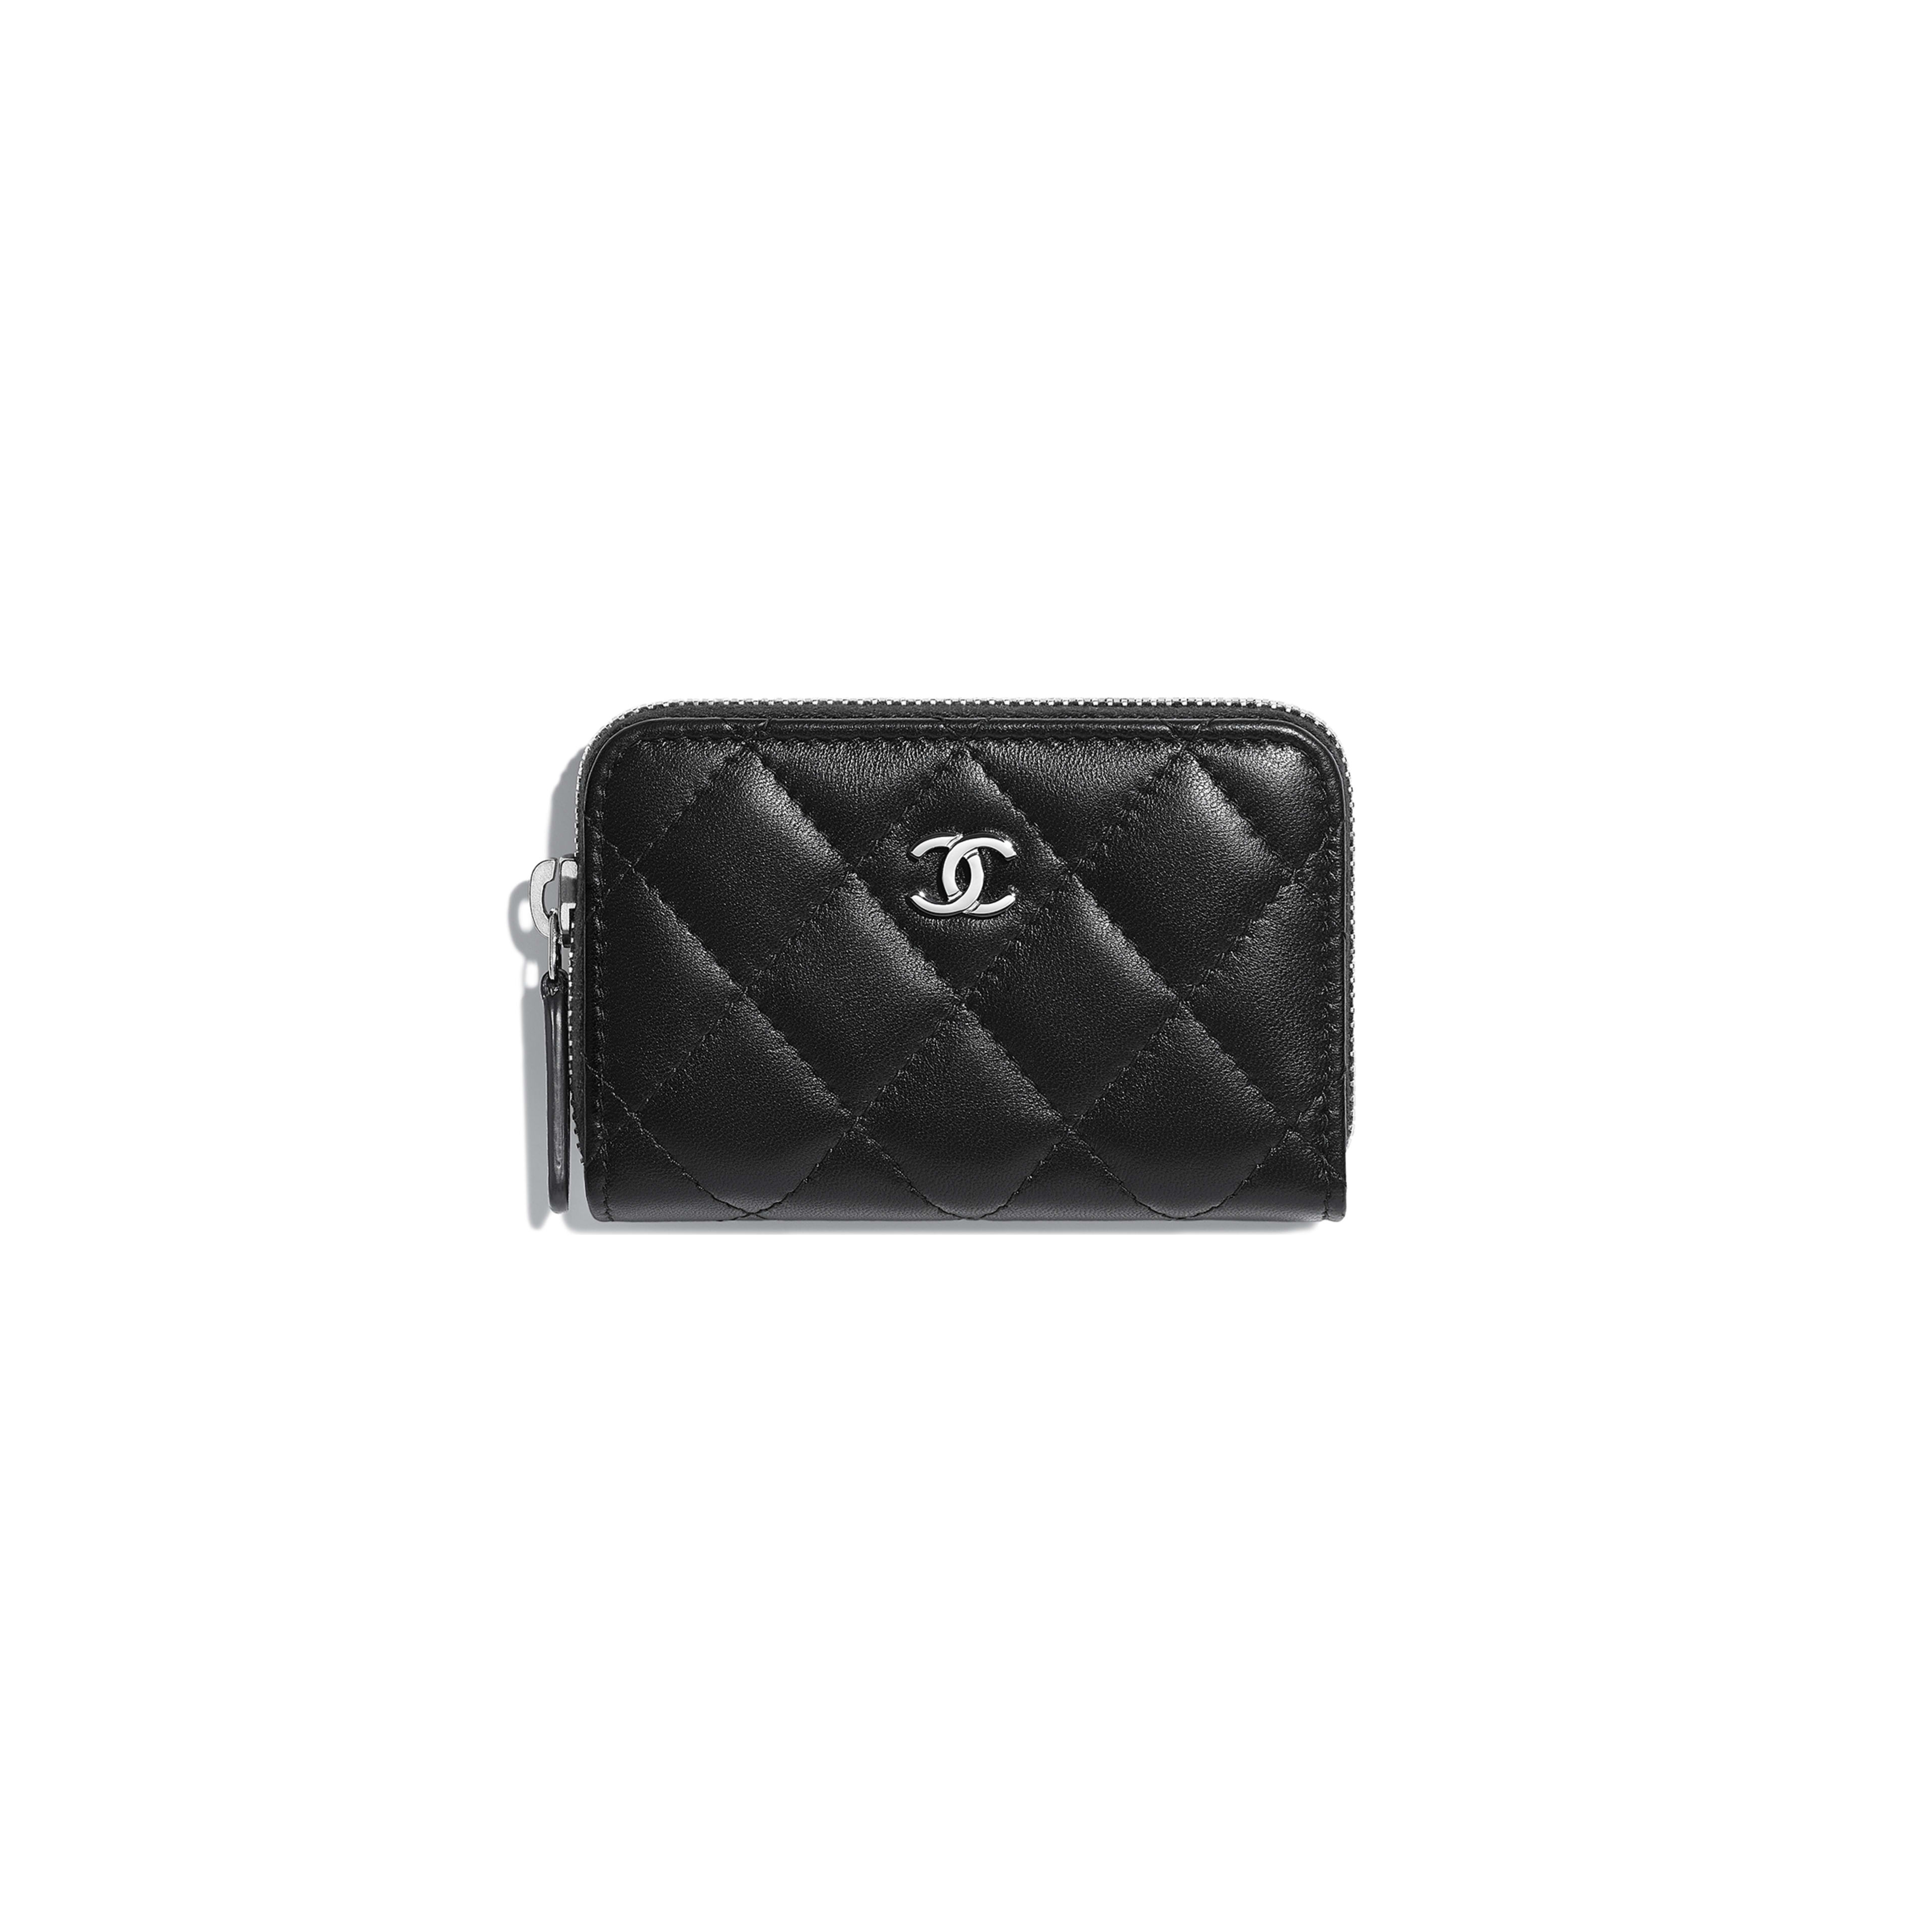 Classic Zipped Card Holder - Black - Lambskin - Default view - see full sized version